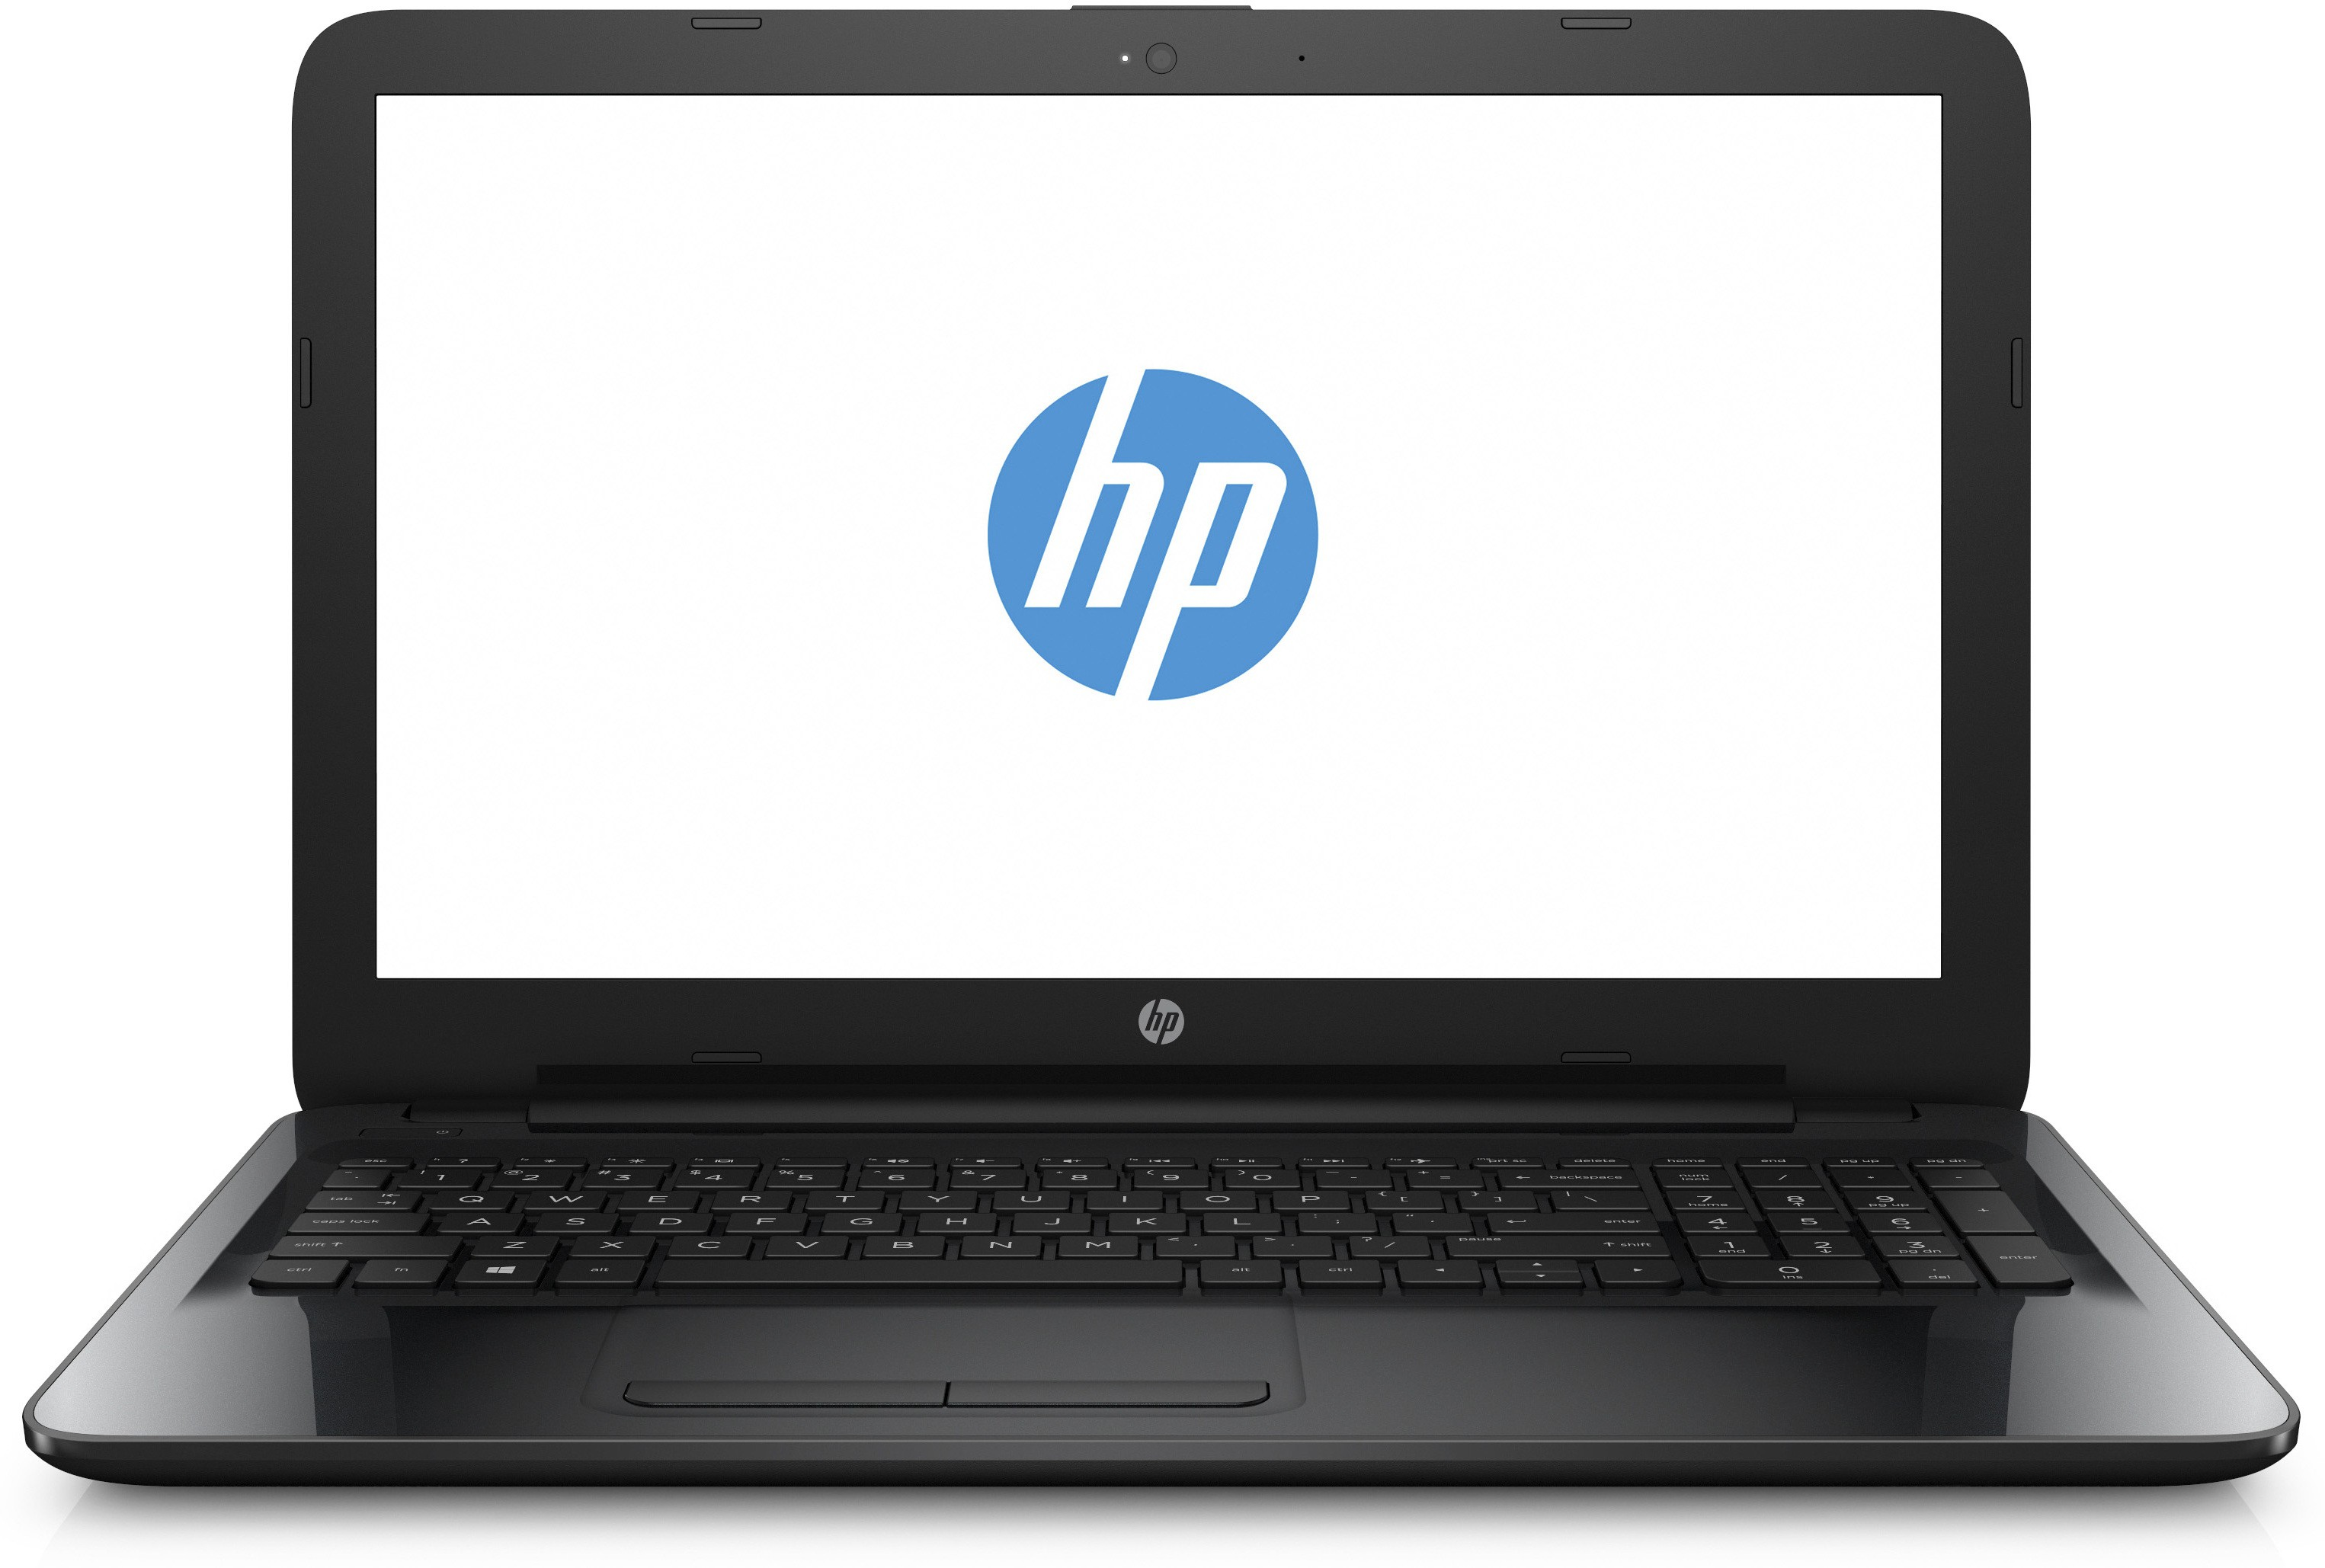 View HP Pentium Quad Core - (4 GB/1 TB HDD/DOS) 15-ay085tu Notebook(15.6 inch, Black, 2.19 kg) Laptop